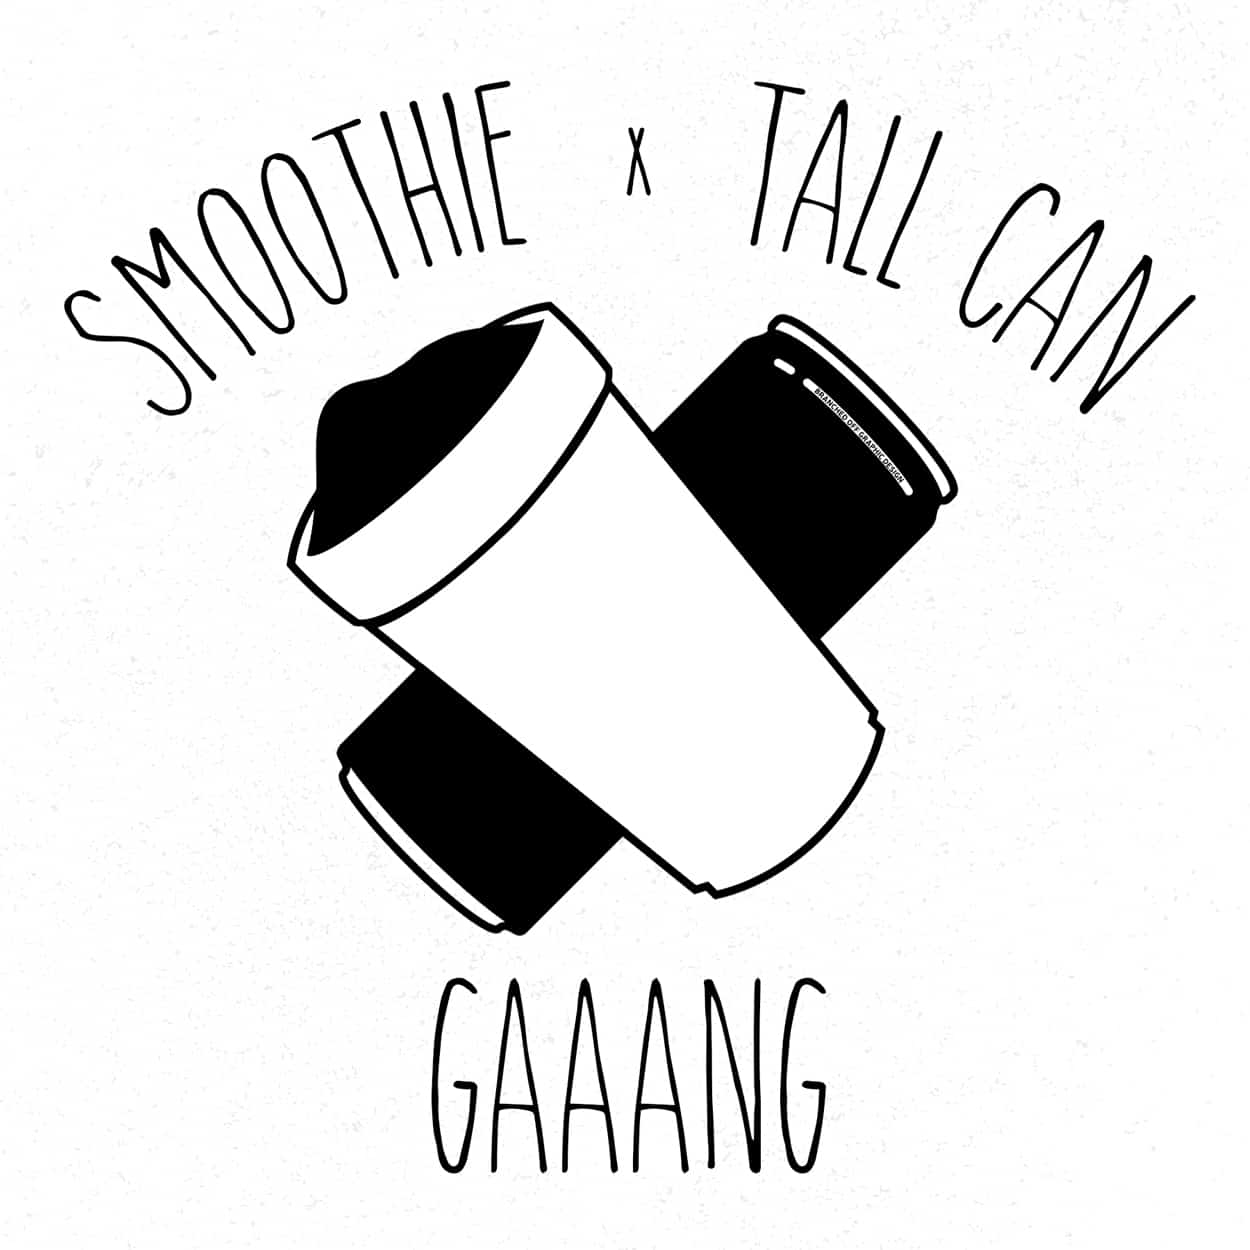 smoothie x tall can gaaang - sweater design